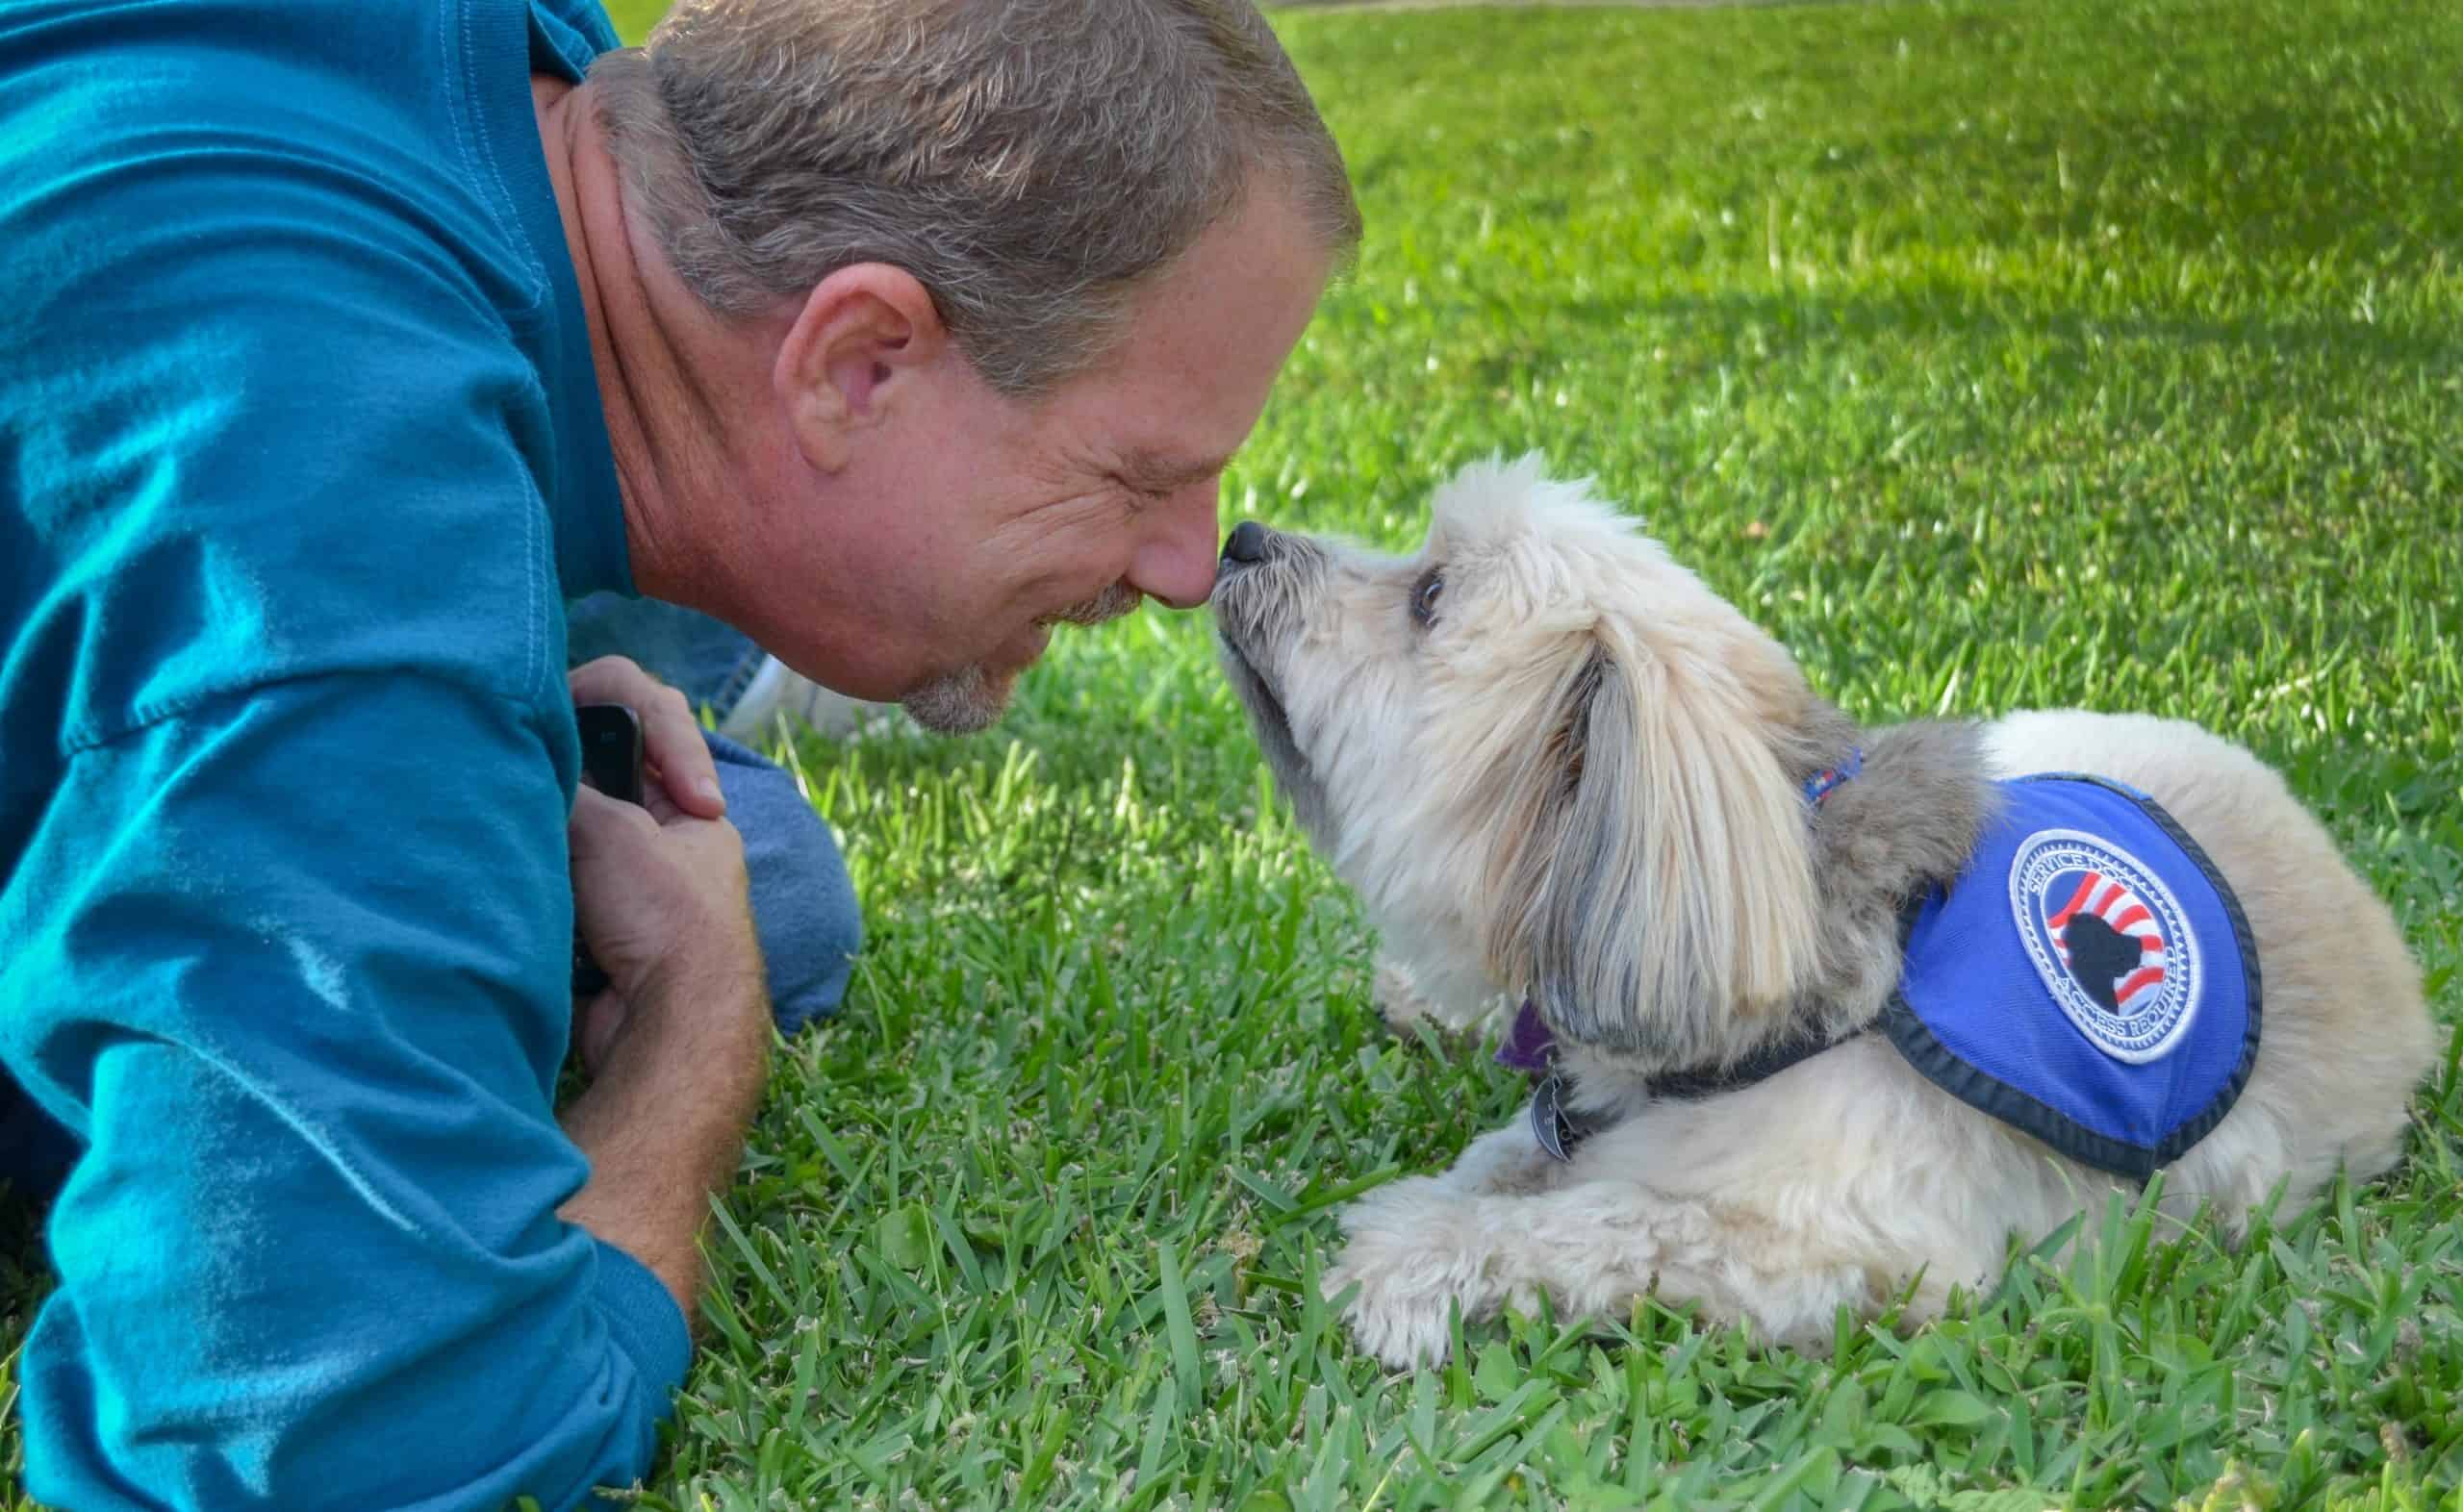 Man interacts with Shih Tzu service dog. A service dog helps prevent a disability from interfering with everyday life.